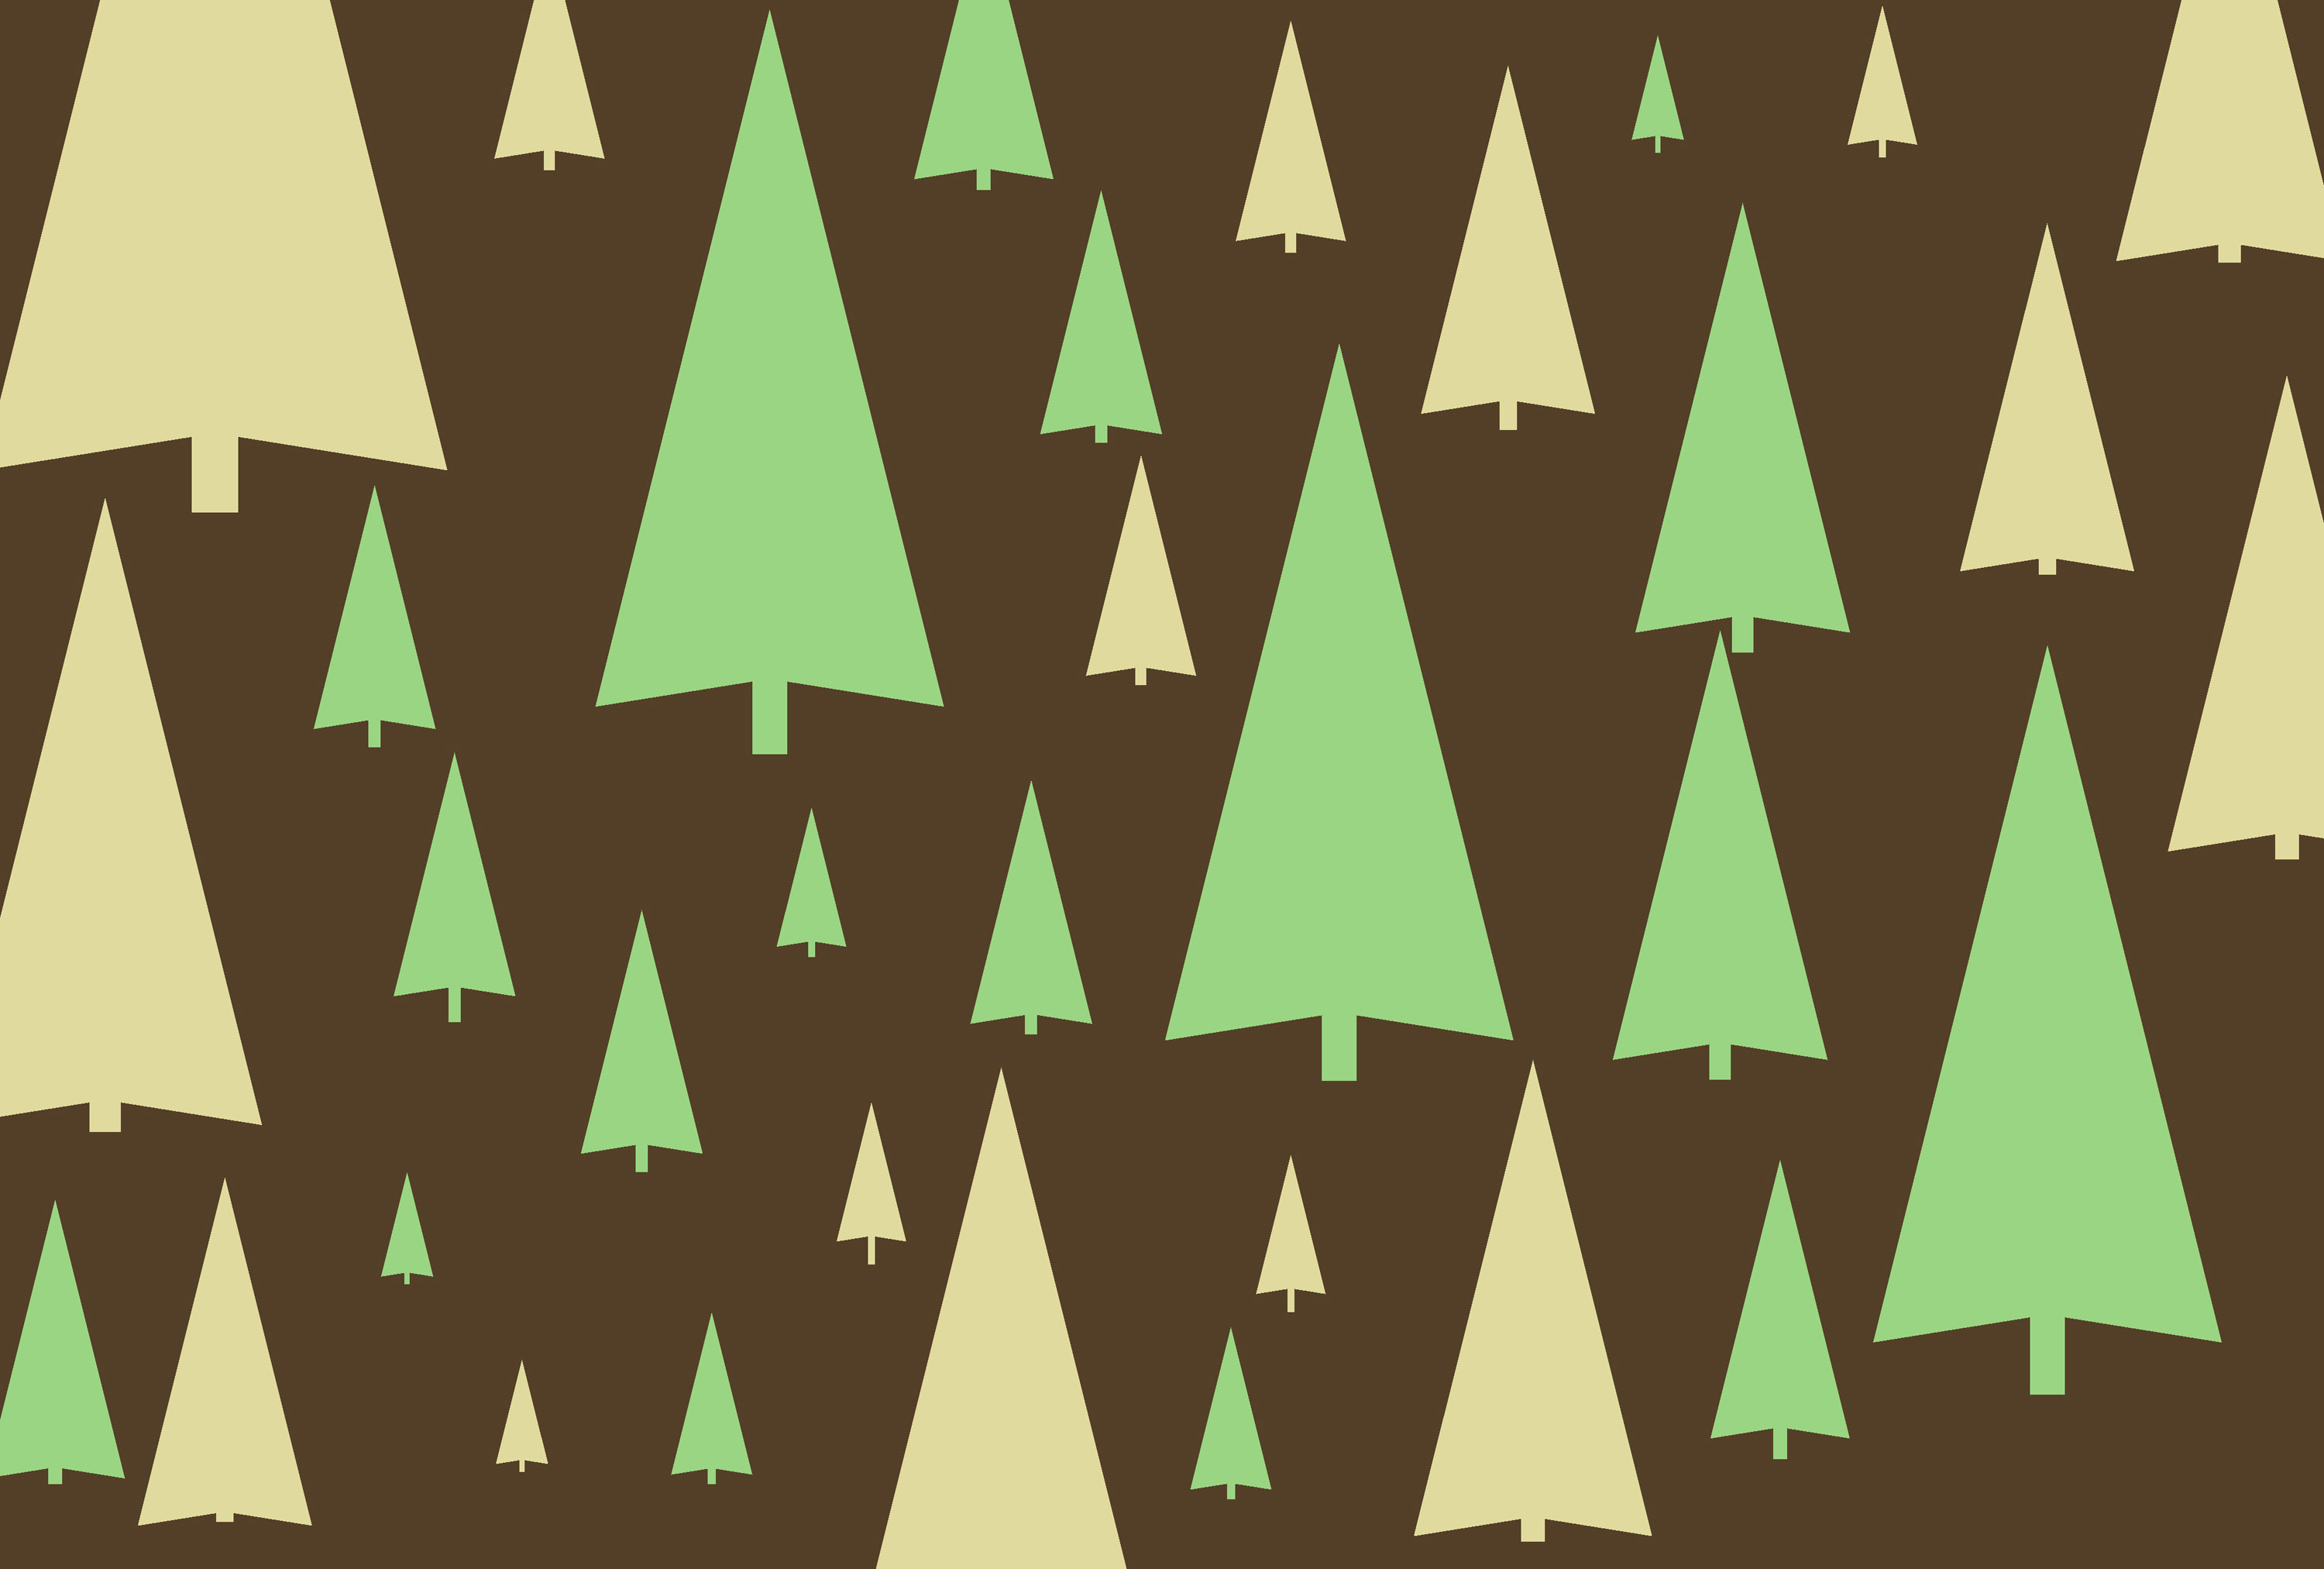 pine tree symbols create festive christmas themed backdrop with a stylish brown and muted greens and yellow palette